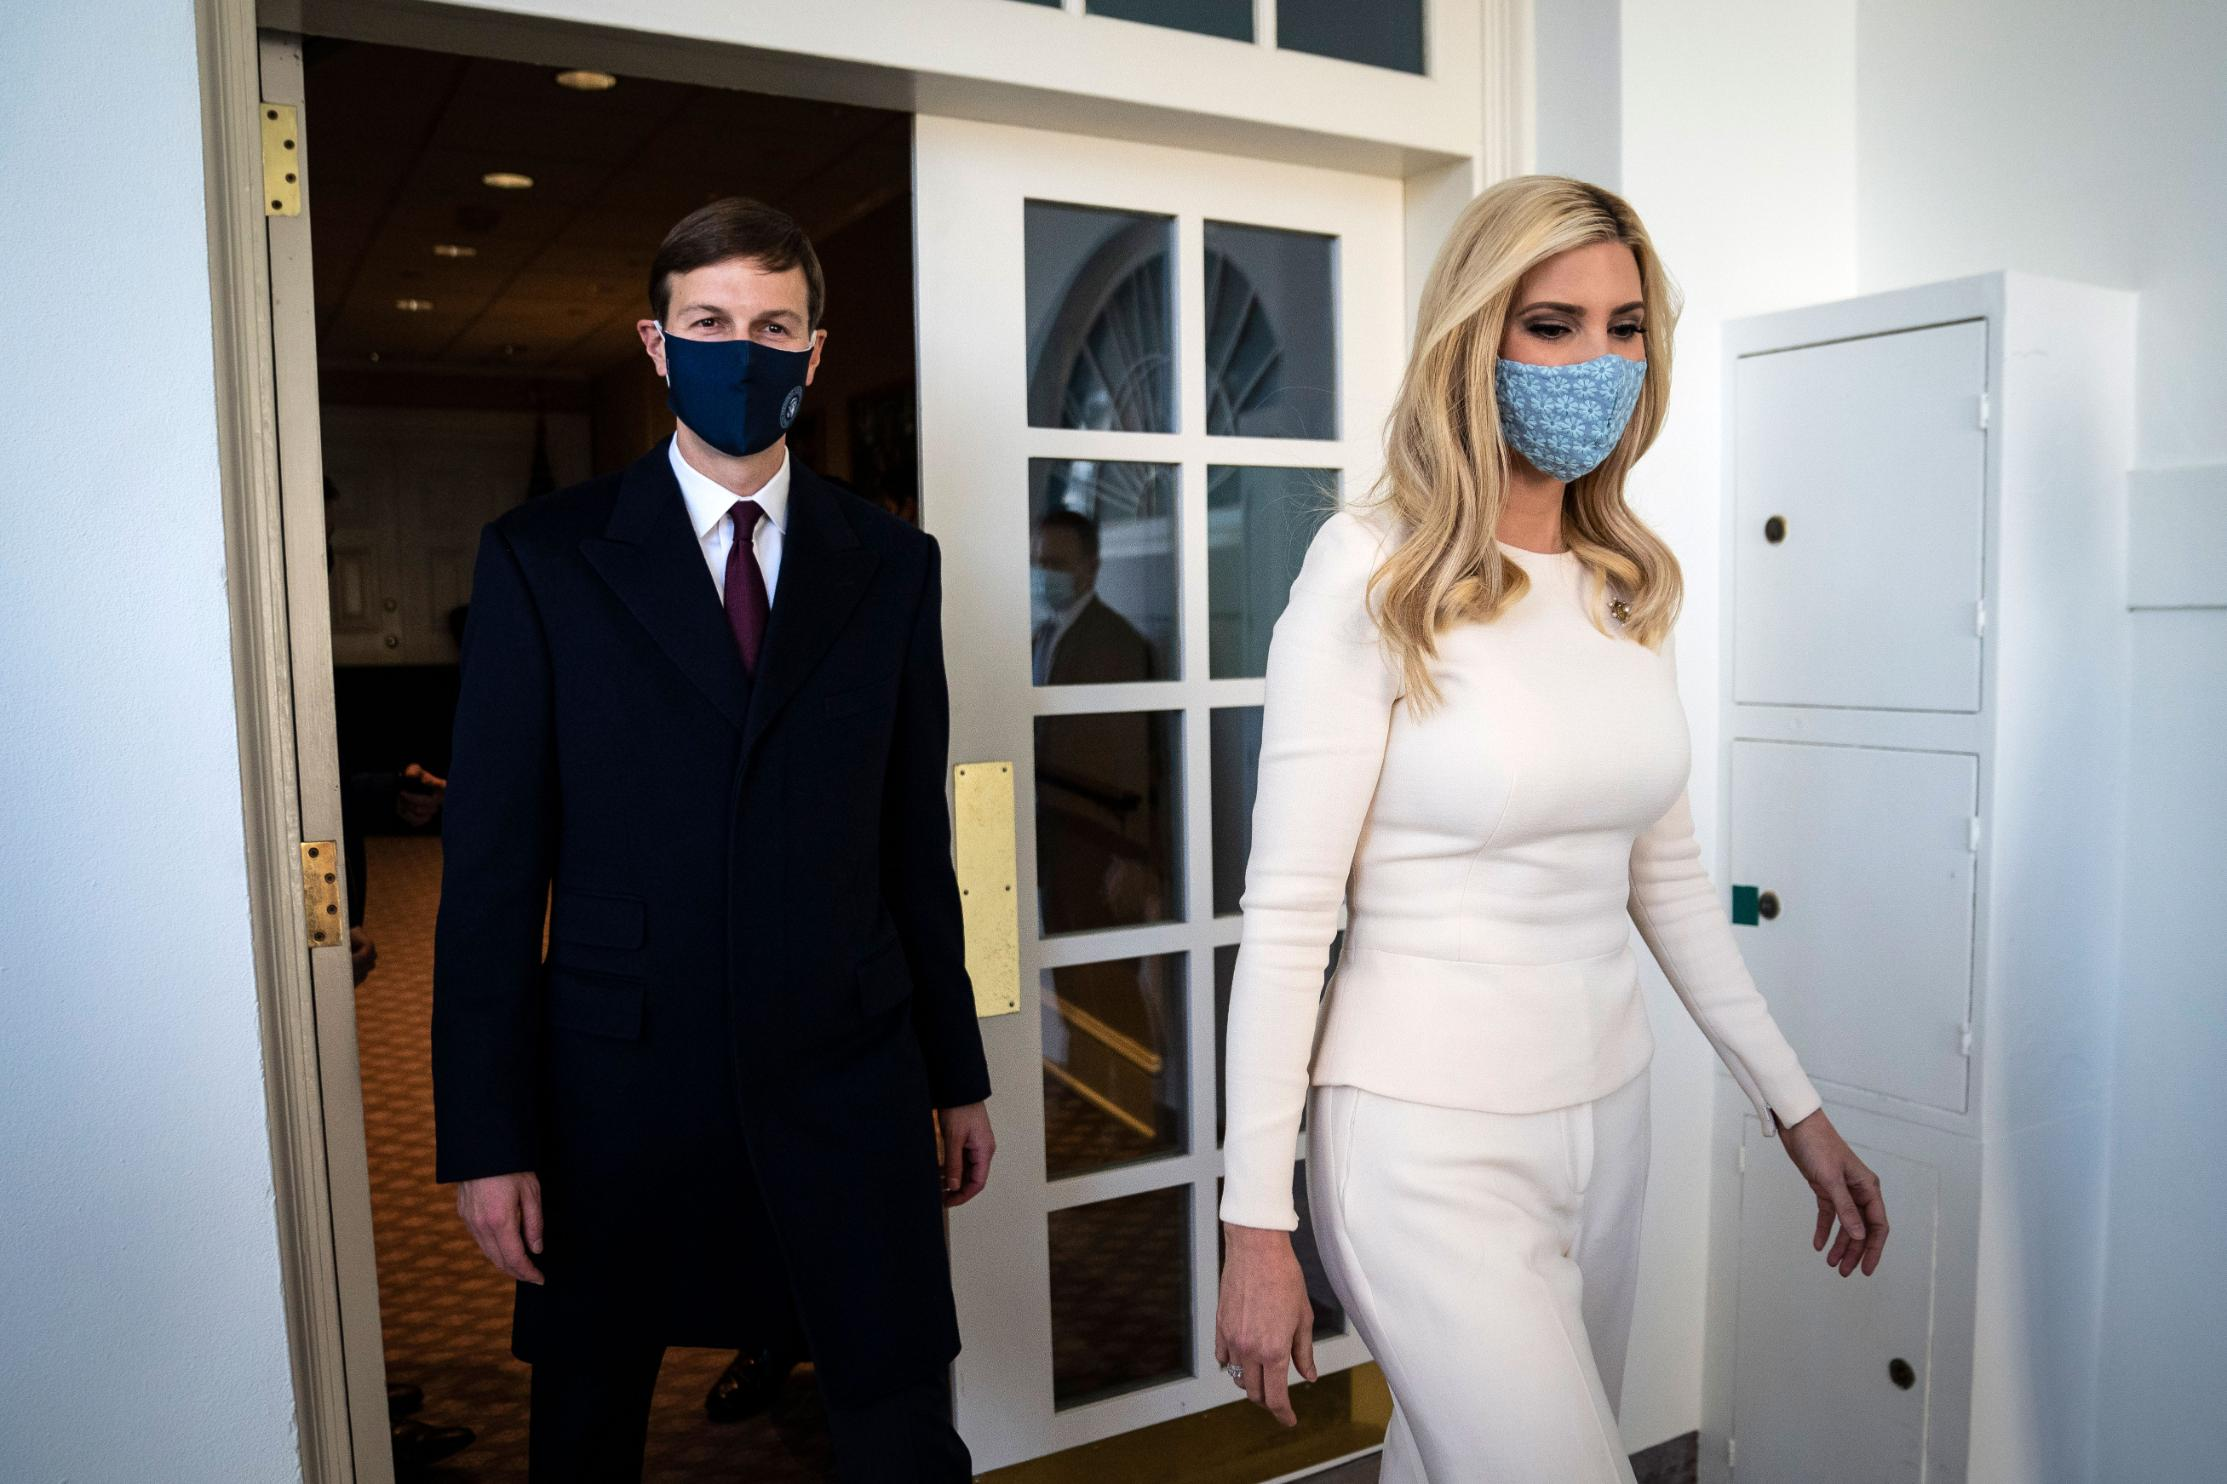 Already shunned from polite society, Ivanka Trump and Jared Kushner face new cold post-insurrection reality